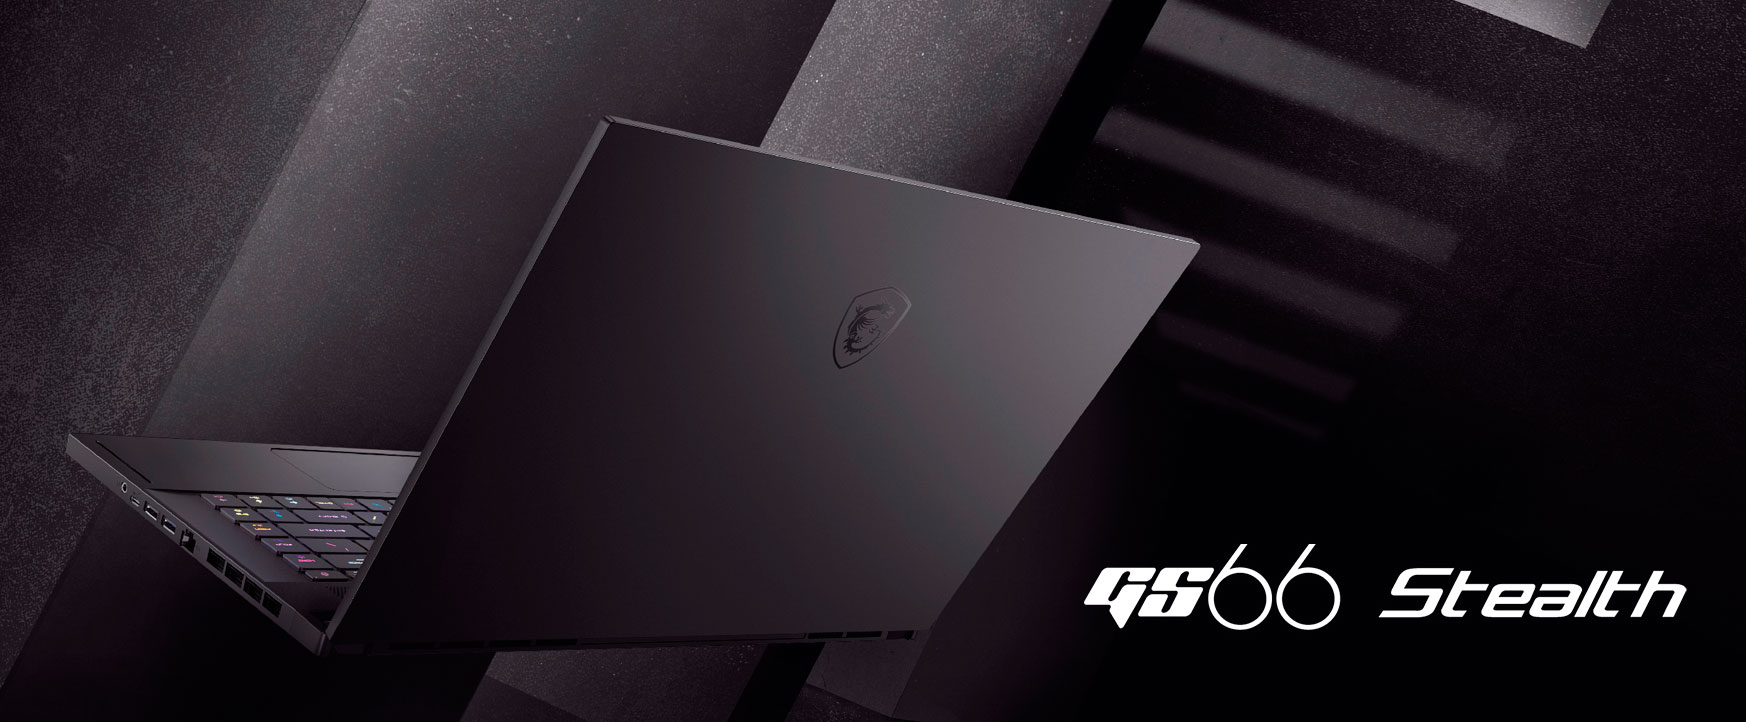 2020 MSI GS66 Stealth ultraportable